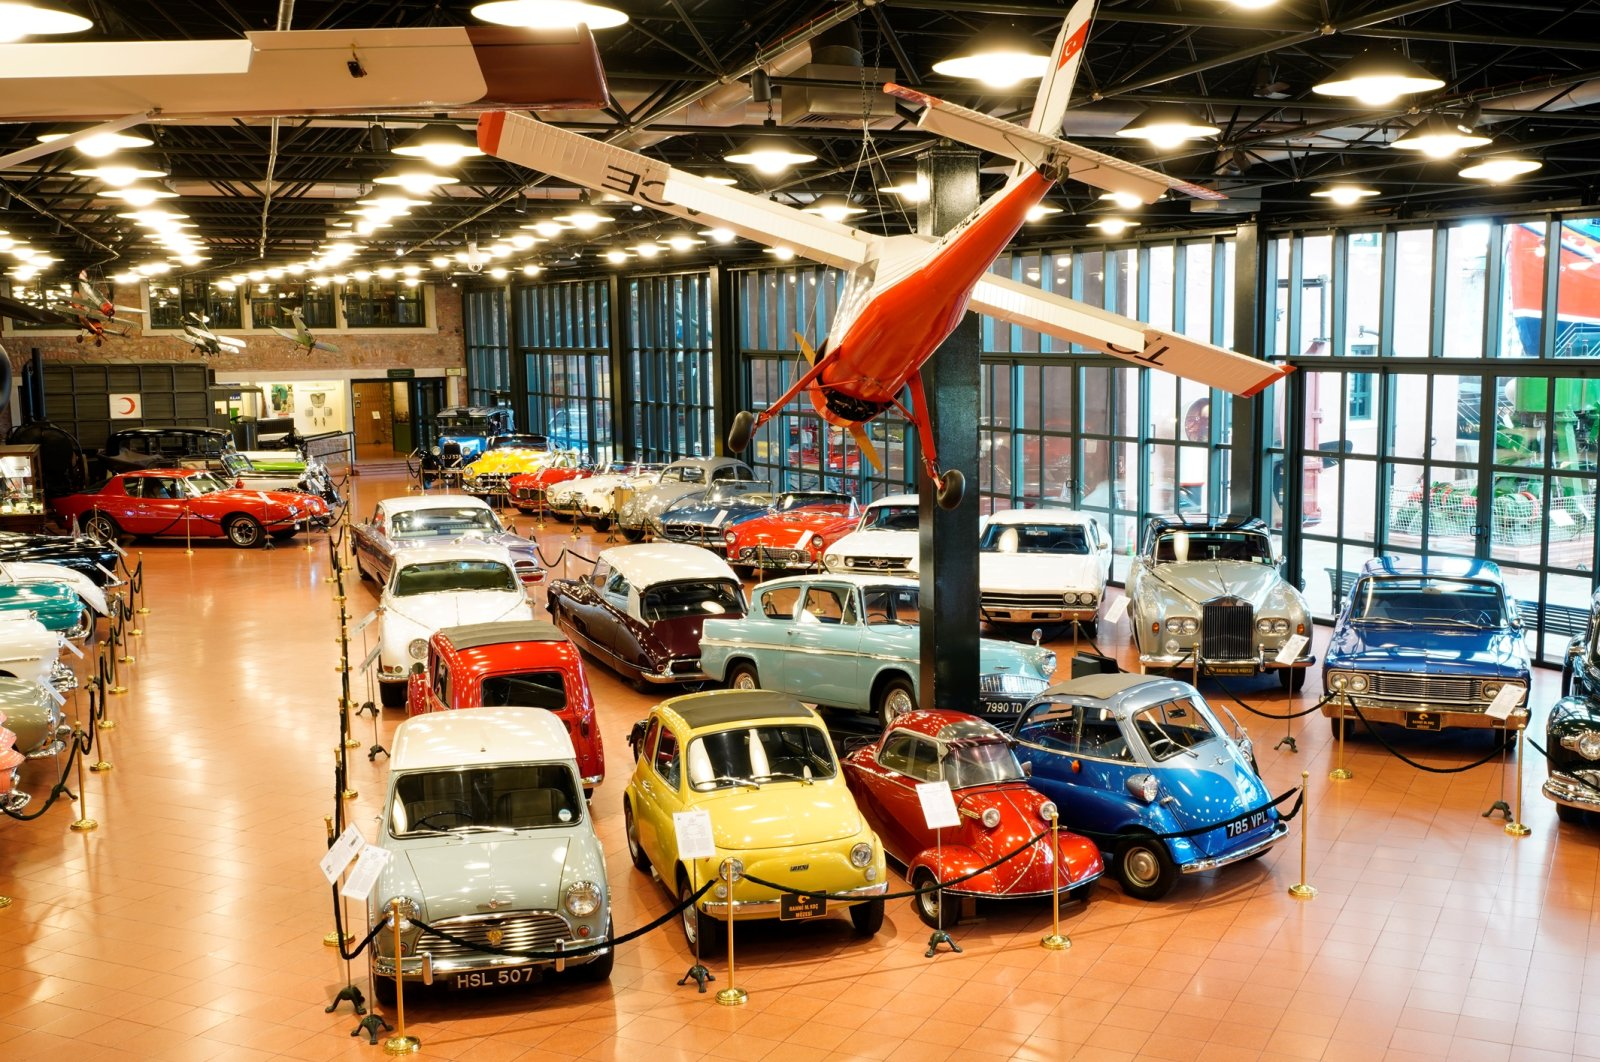 A general view from the classical car series of Rahmi Koç Museum.